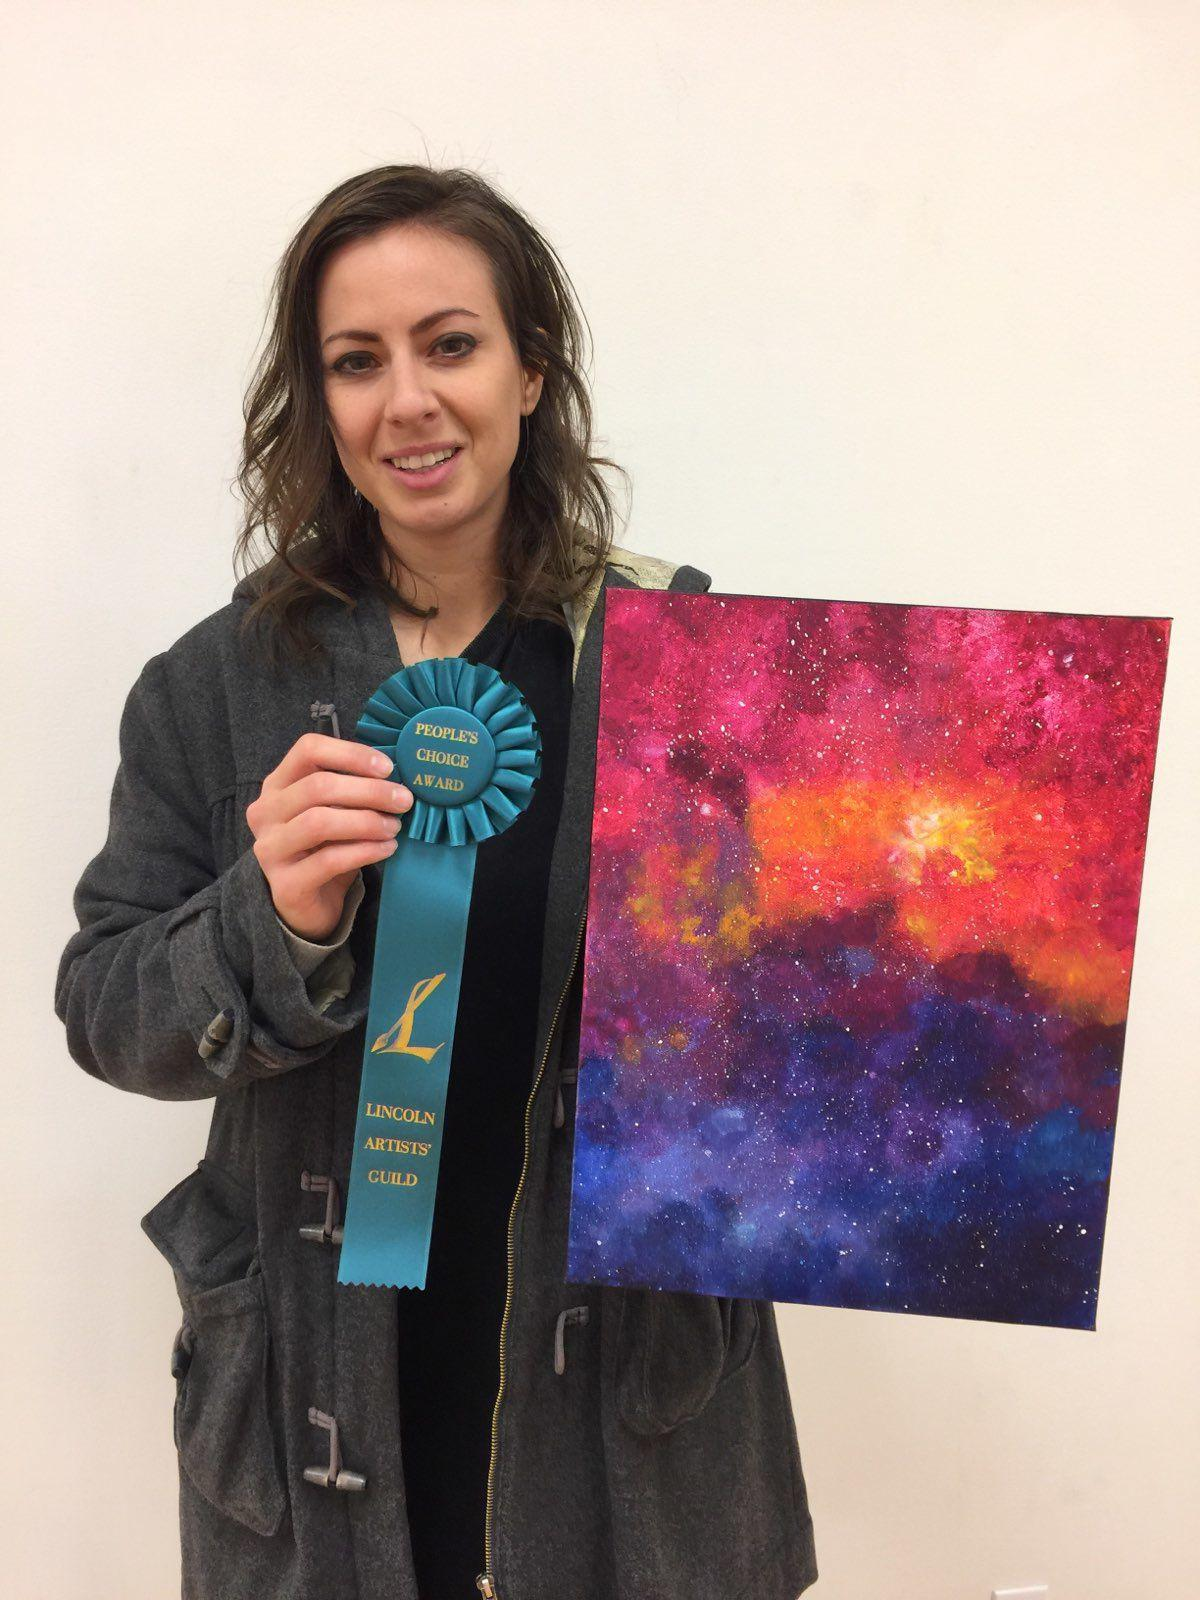 Honorable Mention and Peoples Choice award winner Shawnee Dae Armstrong